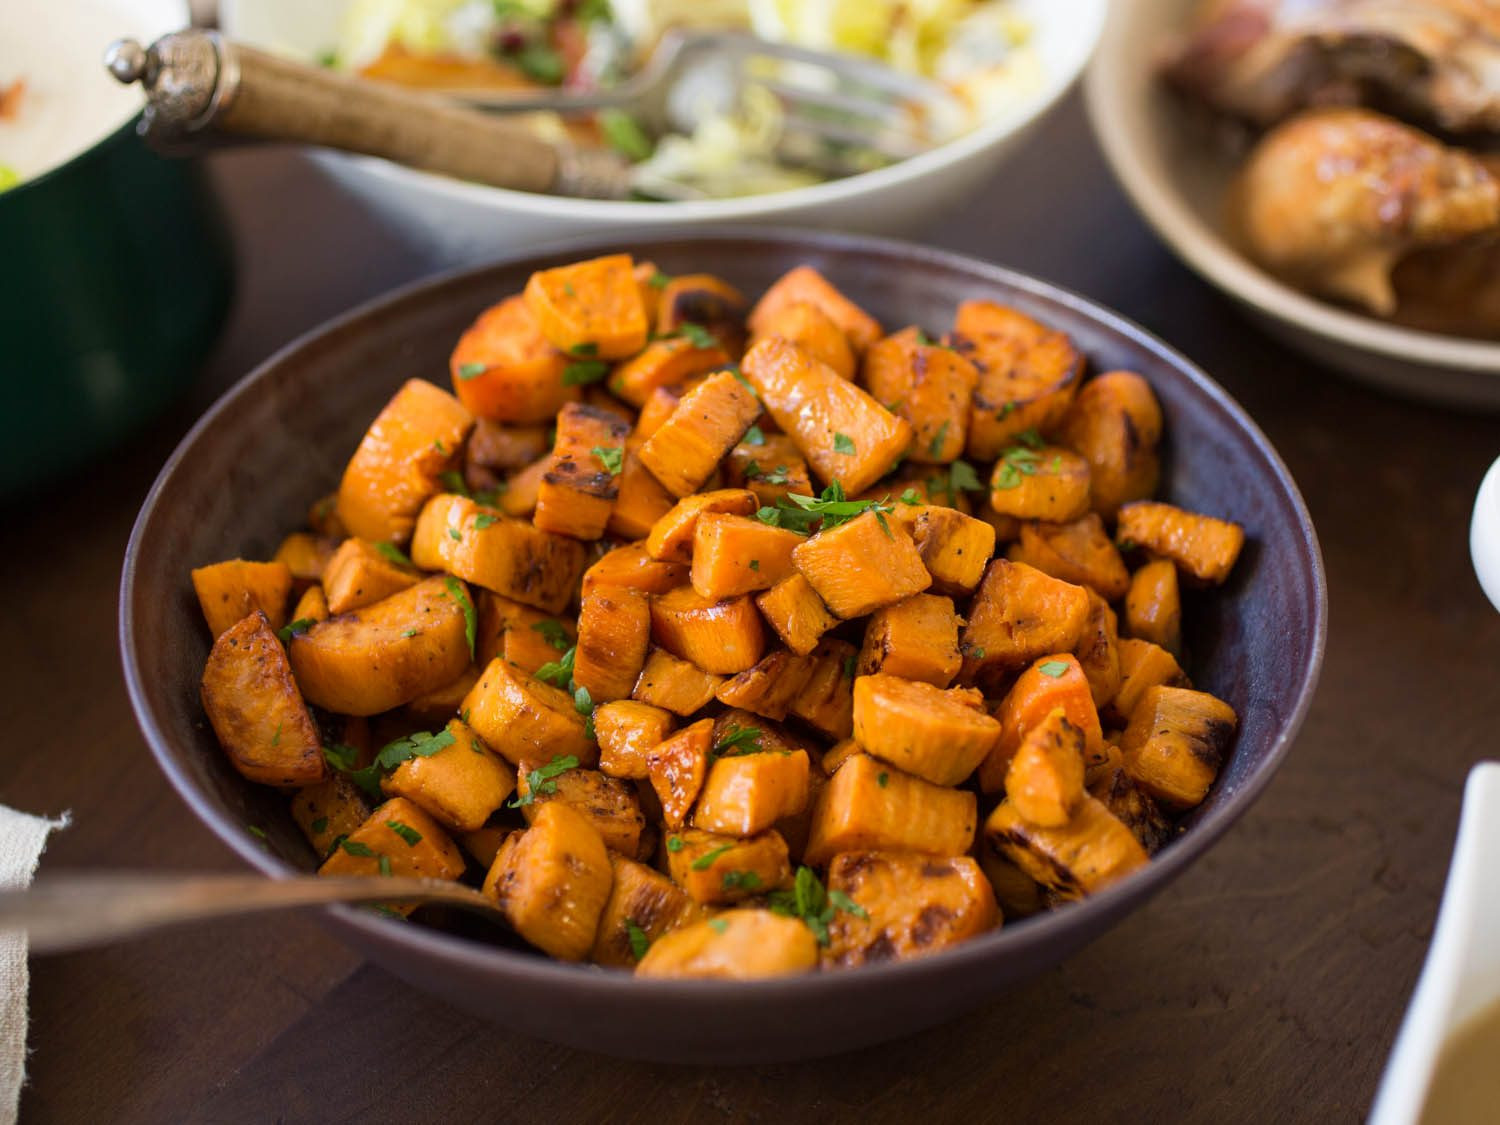 Cooking Sweet Potato  The Best Roasted Sweet Potatoes Recipe